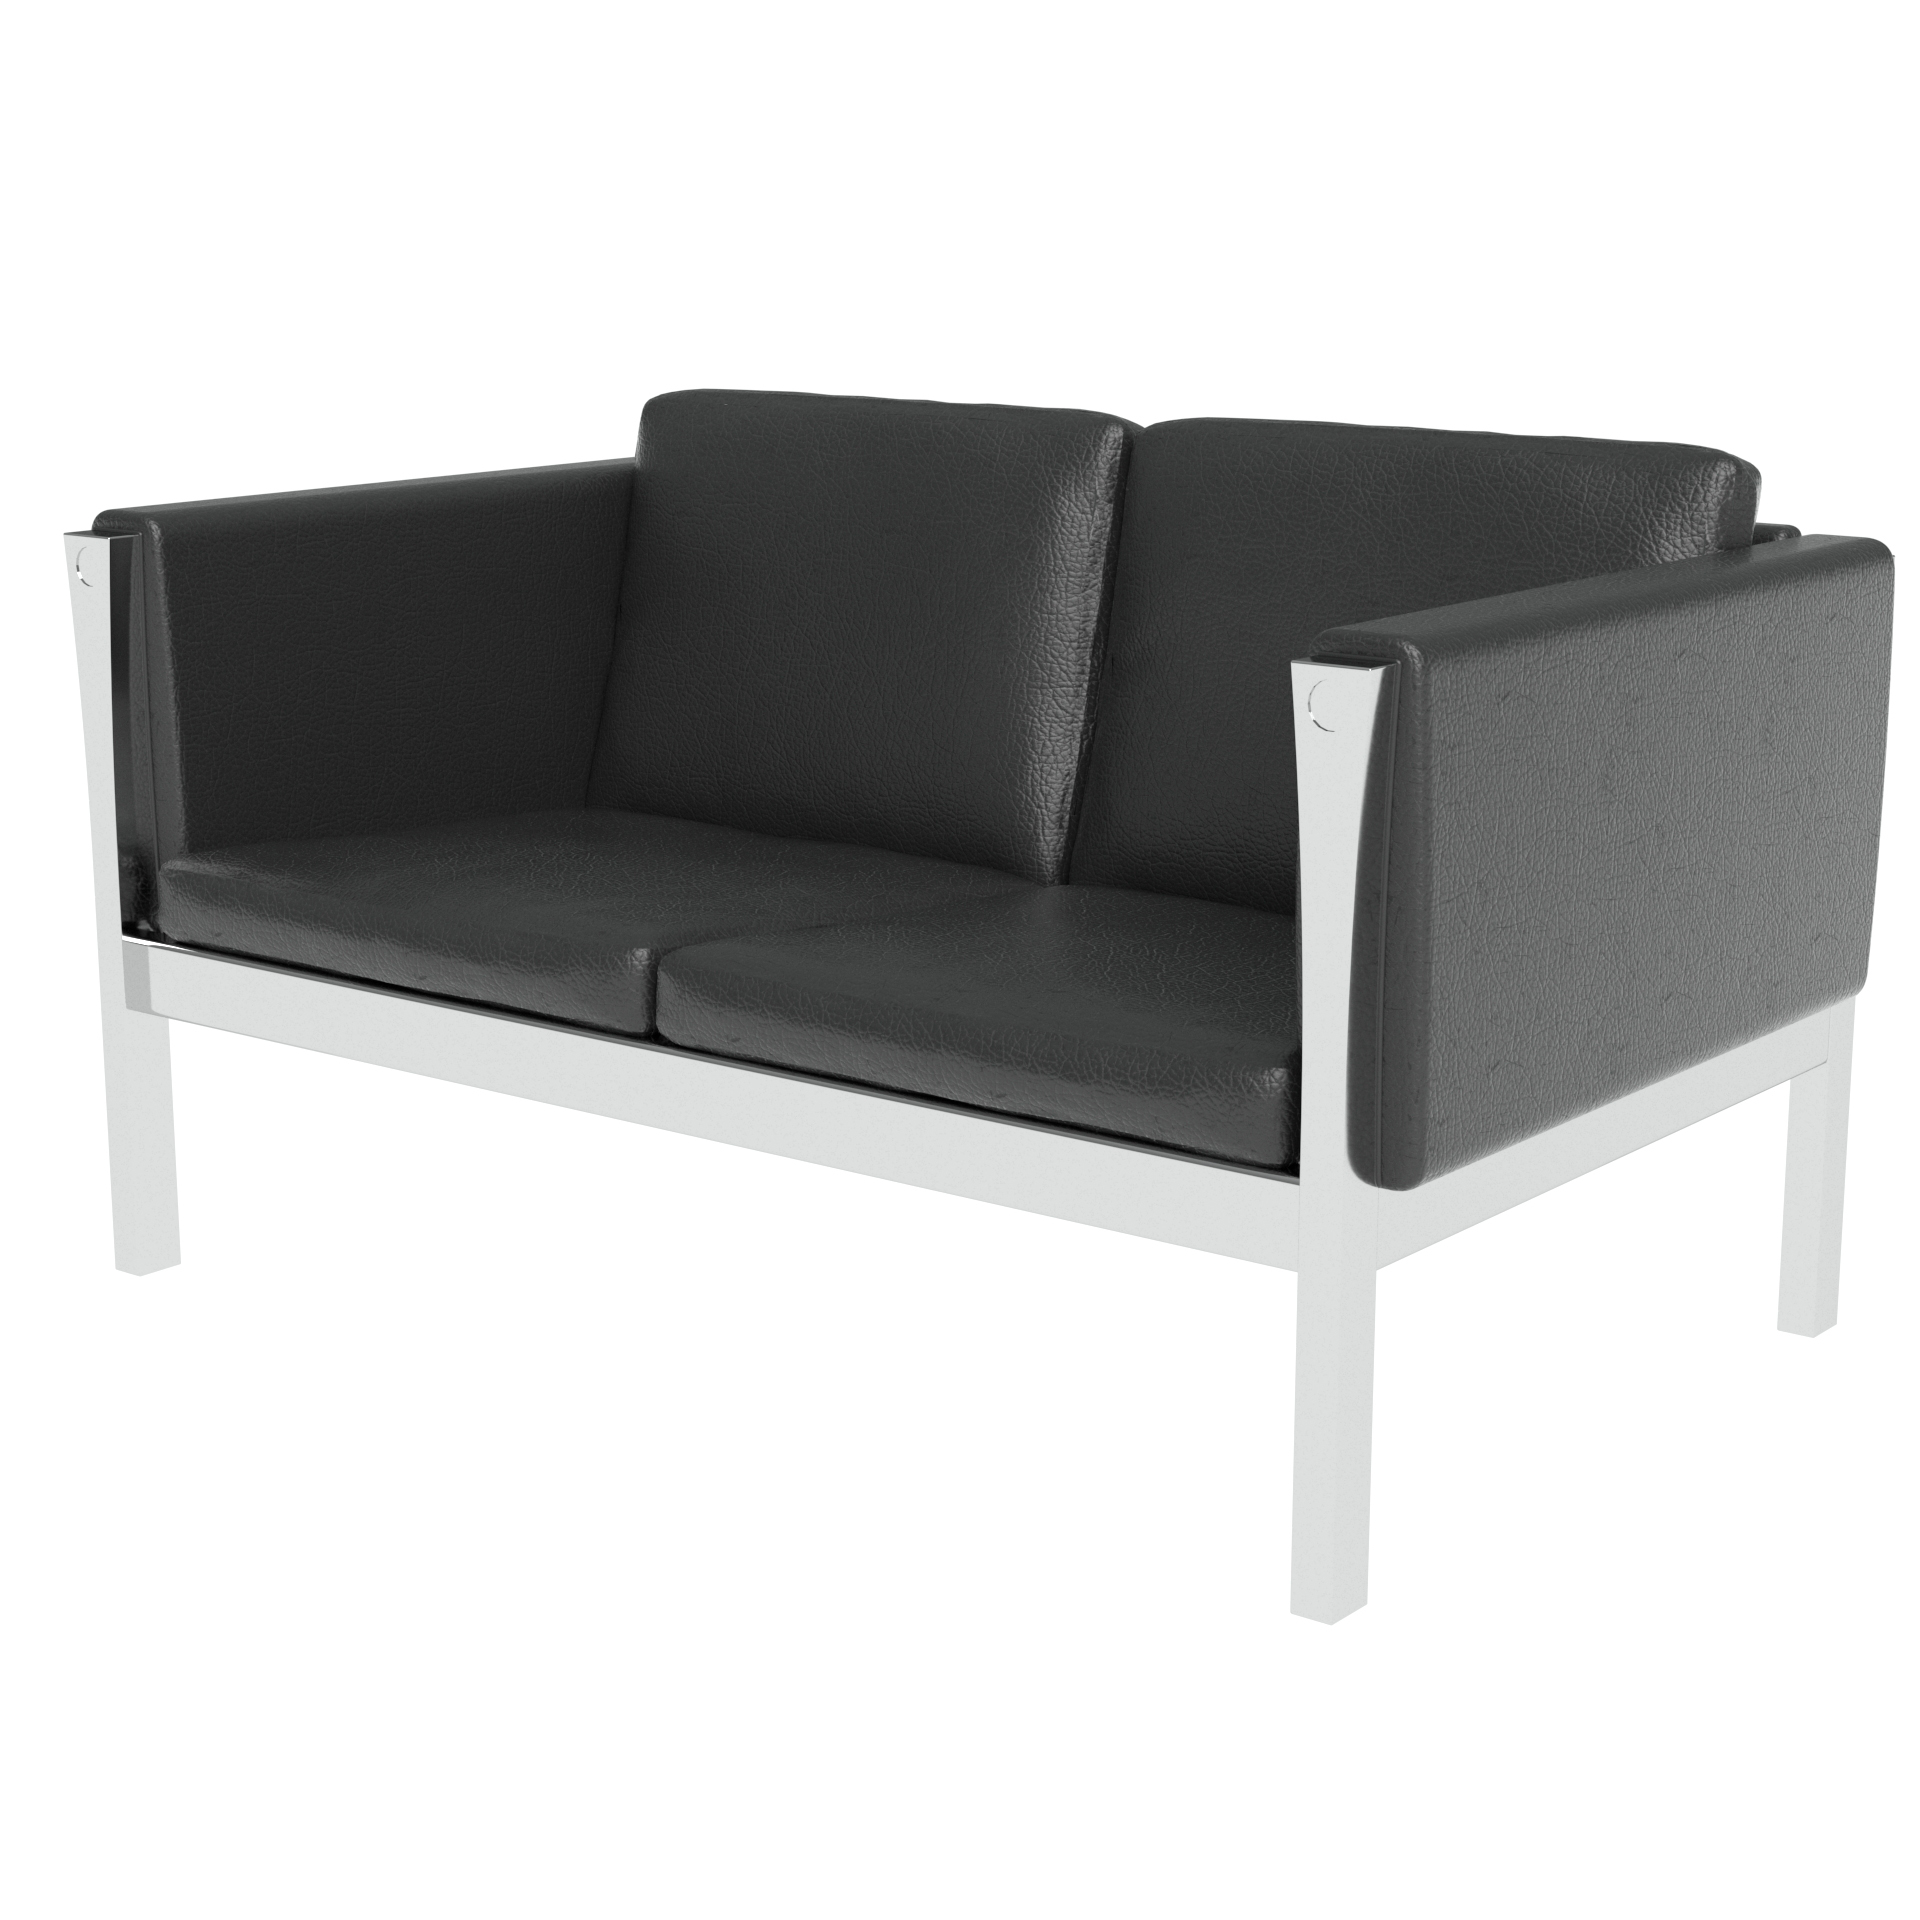 Sofa AI 01 Preview.jpg